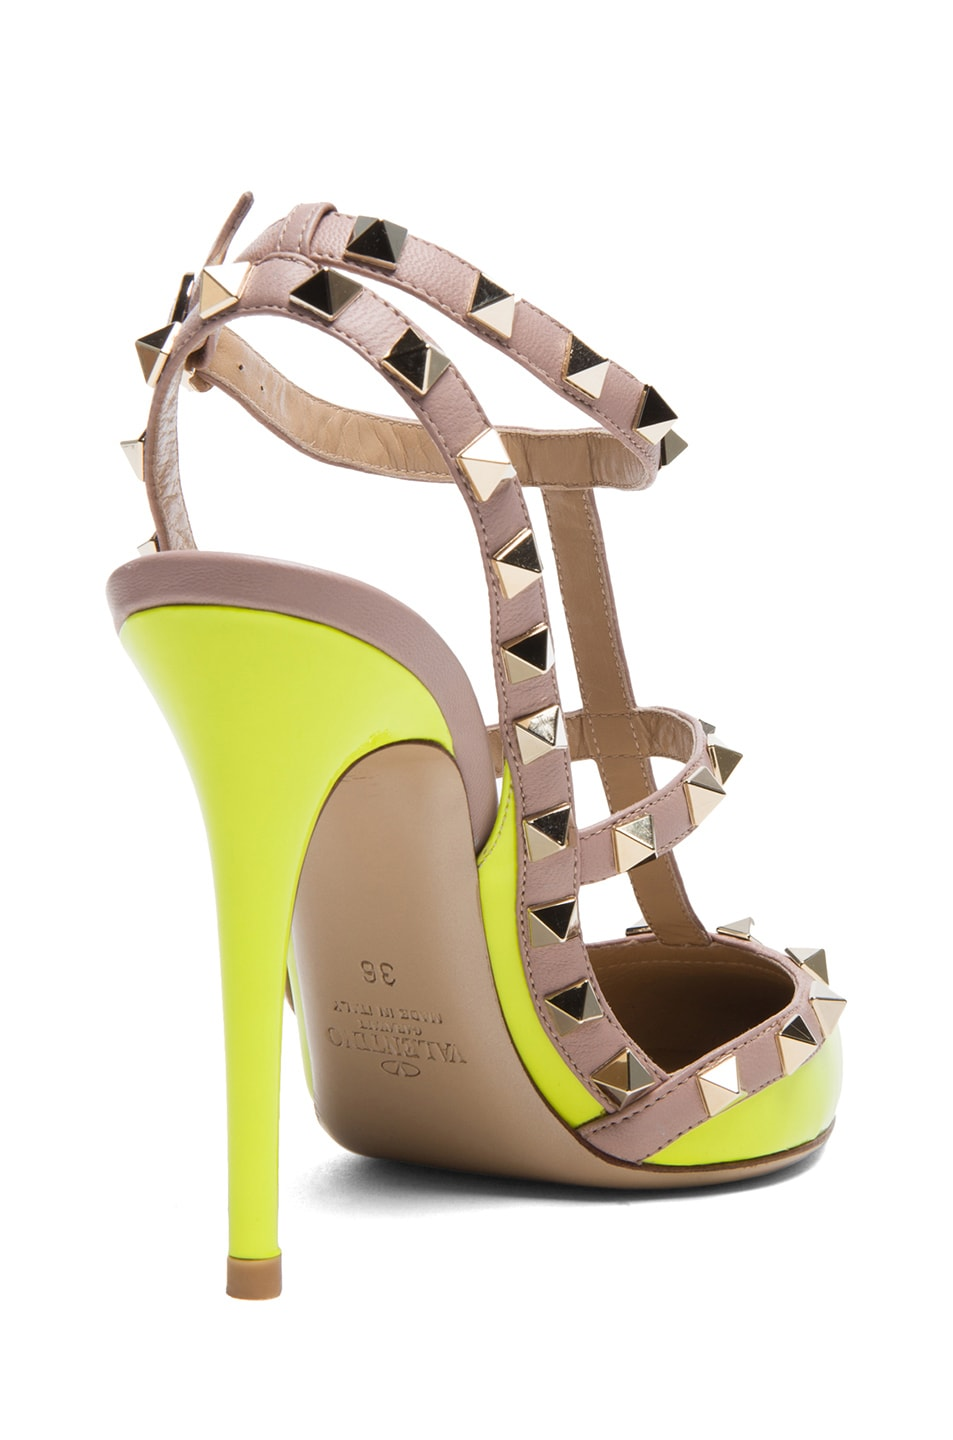 Image 3 of Valentino Rockstud Patent Slingbacks T.100 in Fluo Yellow